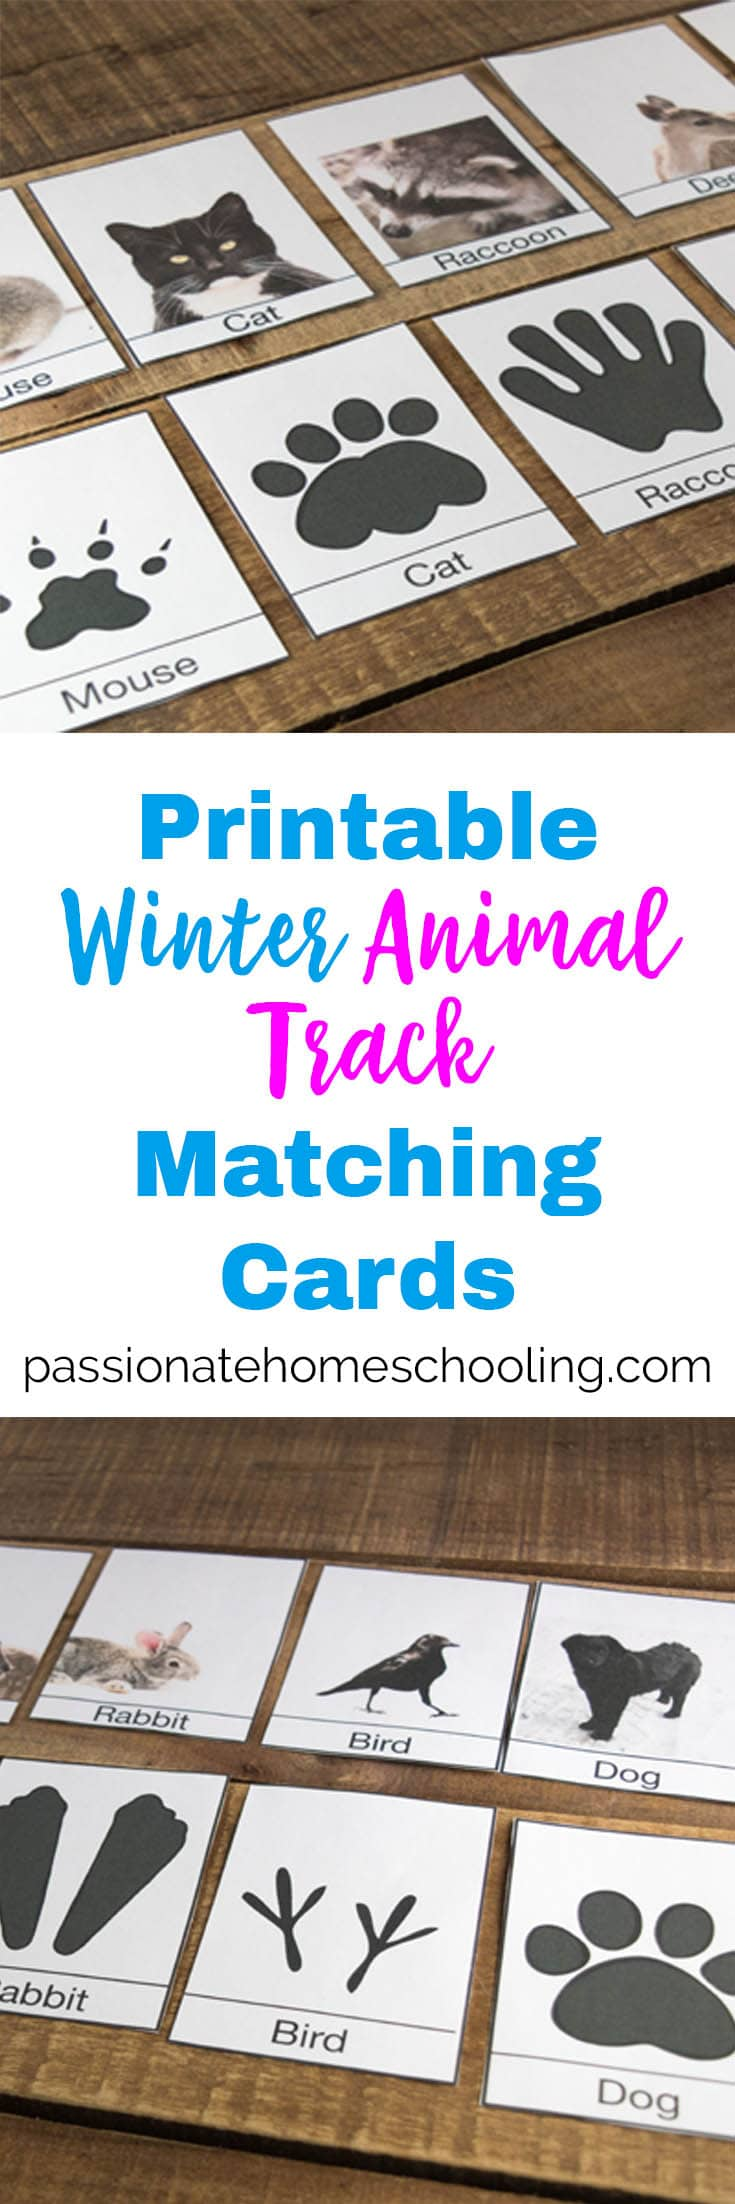 photo about Printable Animal Tracks named Absolutely free Printable Wintertime Animal Music Id